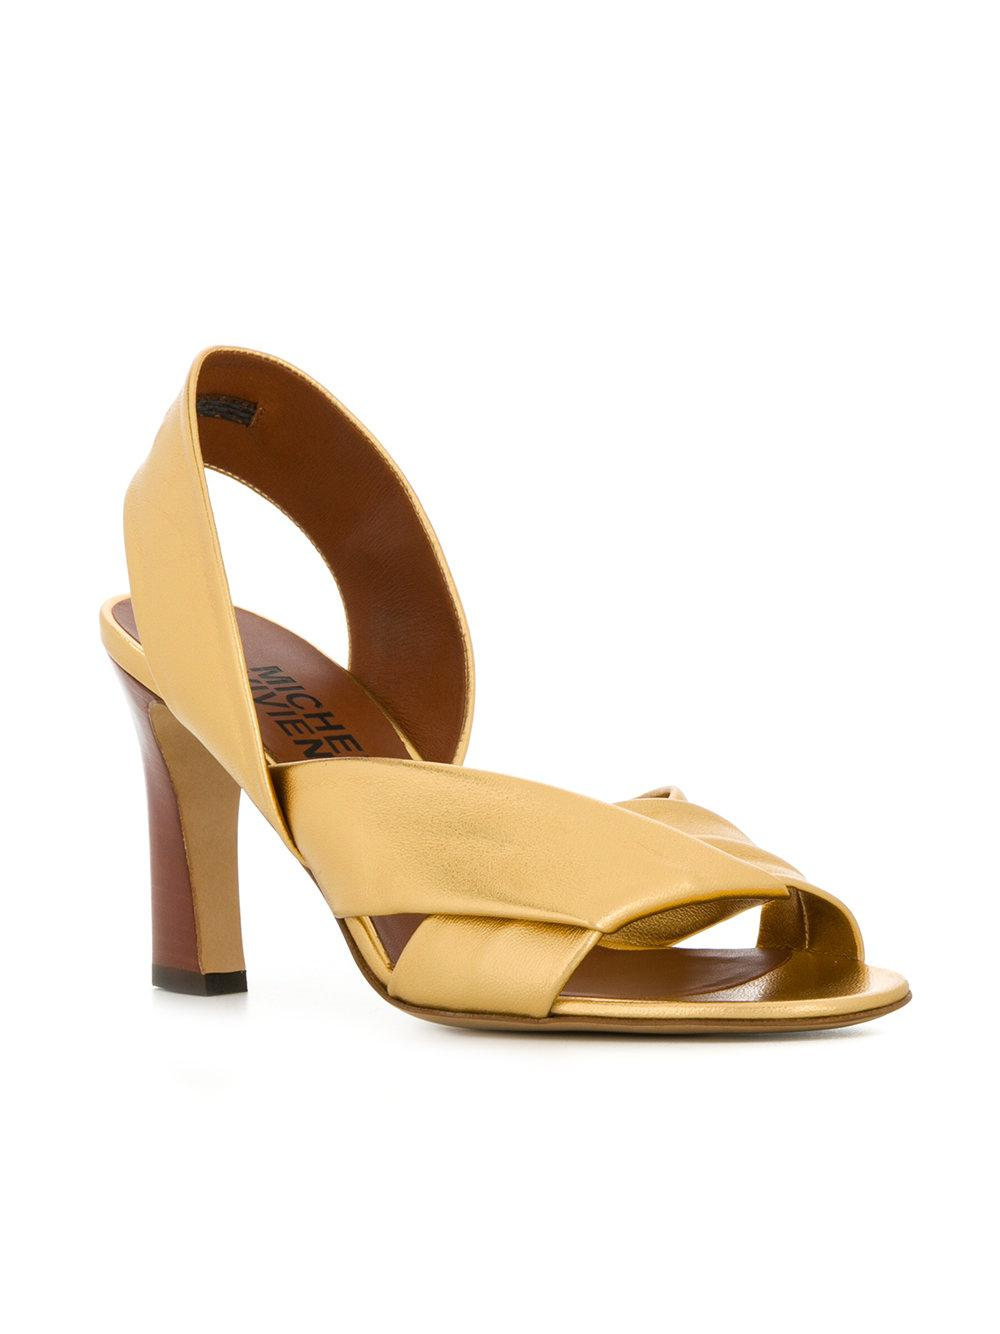 MICHEL VIVIEN Cross strap sandals